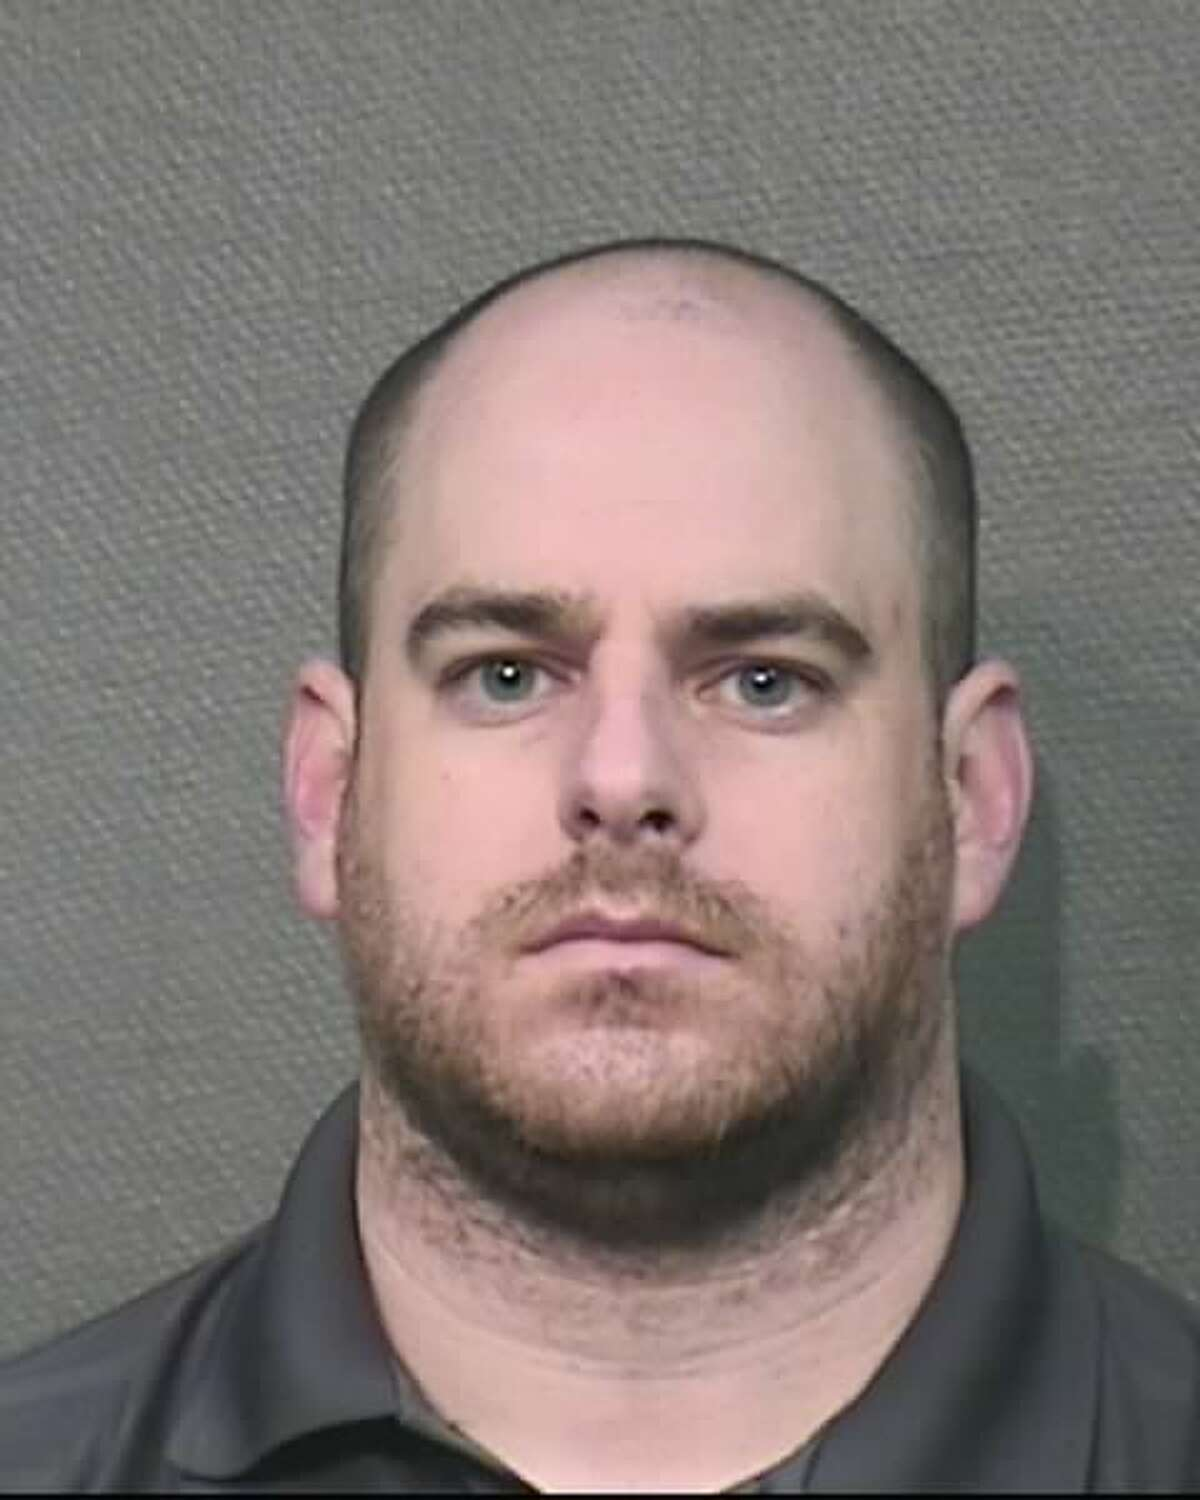 Joffre James Cross III, 33, was arrested in Houston over the weekend on multiple weapons charges. He is allegedly tied to white supremacist groups, according civil rights organizations and federal court records. >>> Hate groups identified in Texas